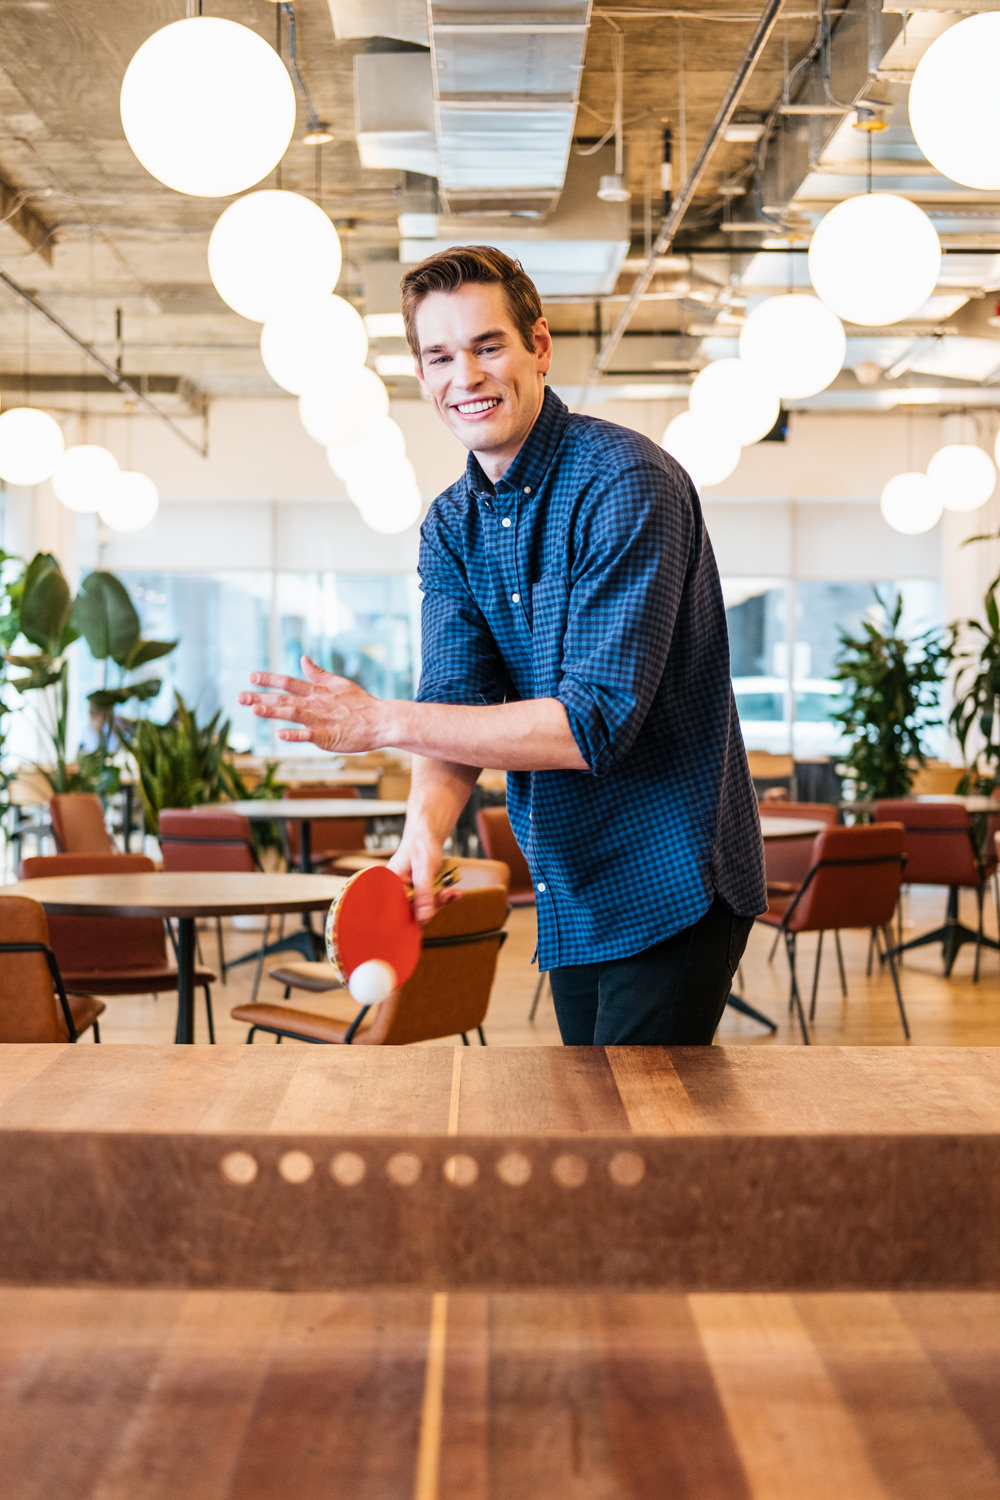 Photoguzman_WeWork_Commercial_Photography_R_web-11.jpg